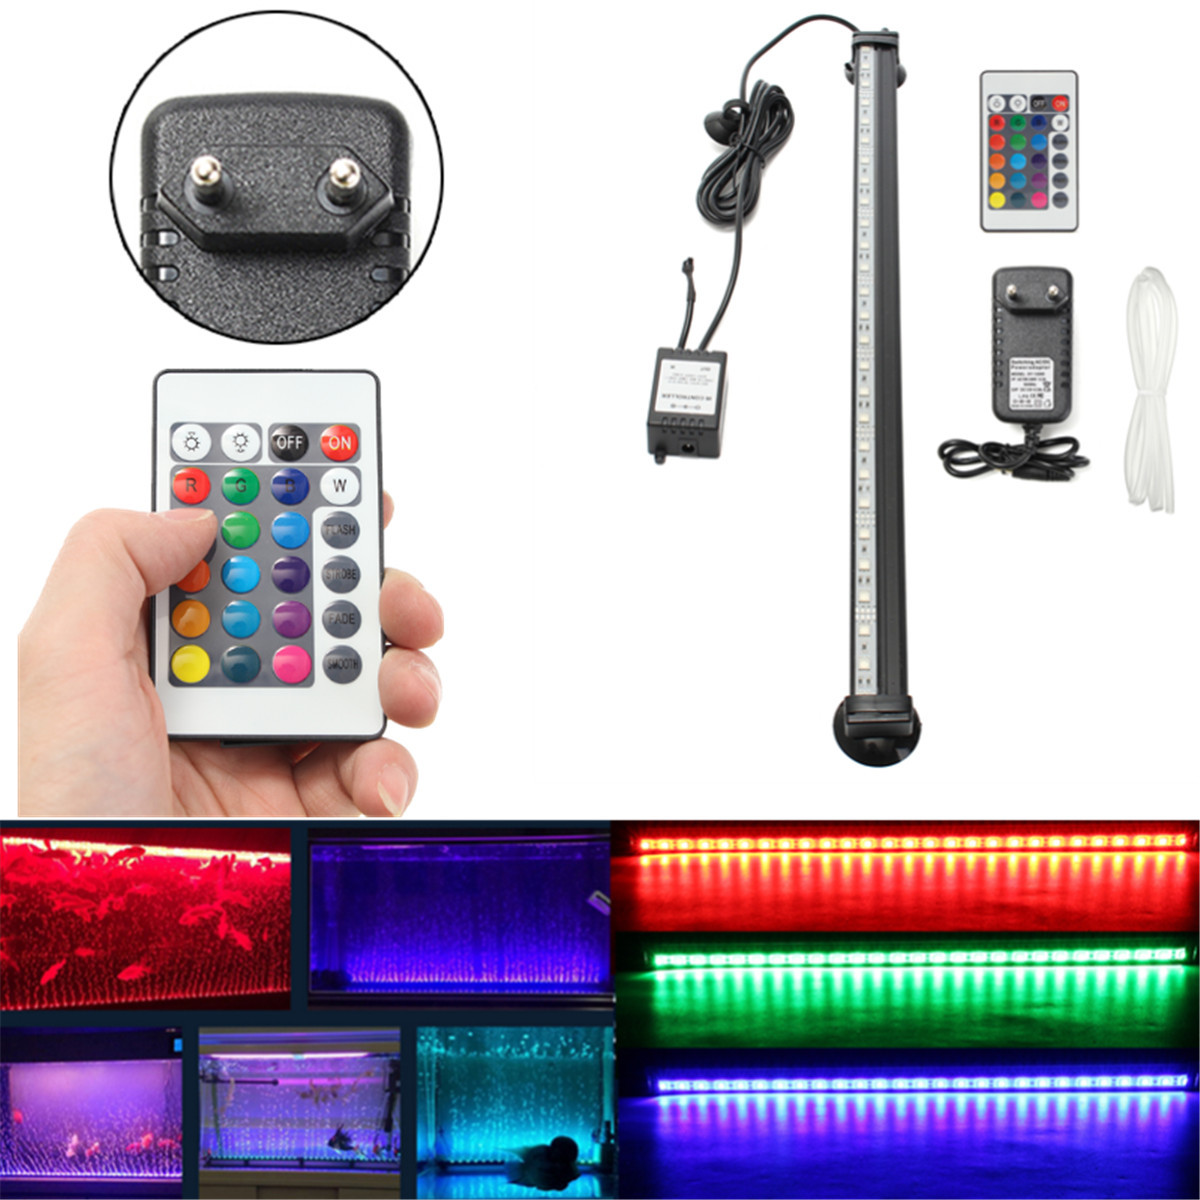 led aquarium beleuchtung unterwasser lampe rgb lichtleiste fernbedienung eu plug ebay. Black Bedroom Furniture Sets. Home Design Ideas